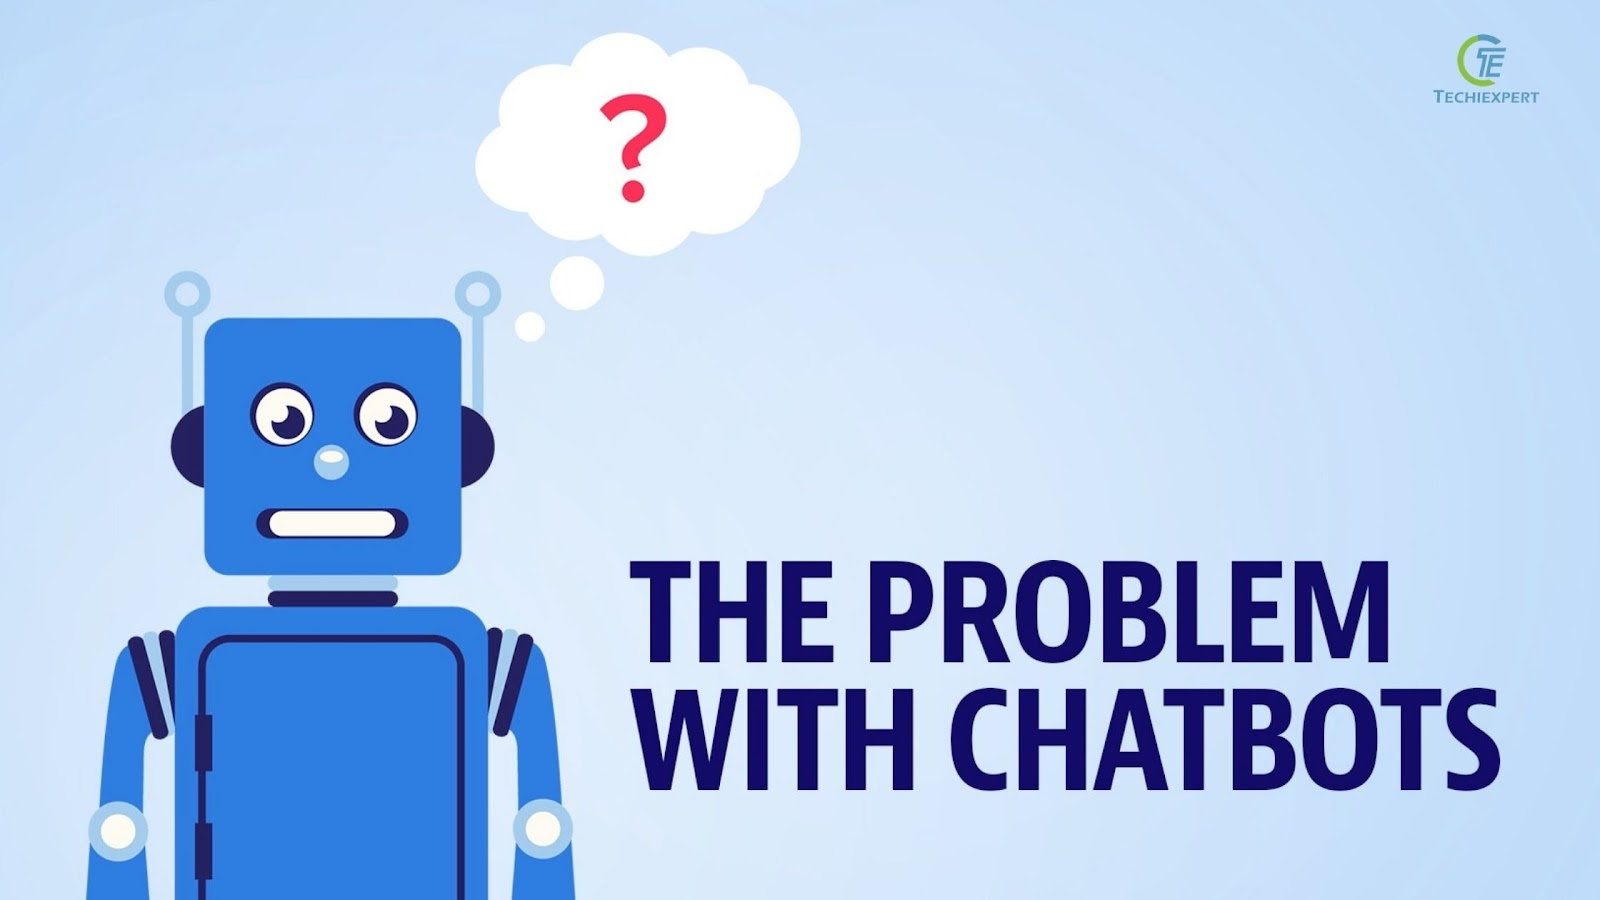 What are the challenges that your chatbot is facing?